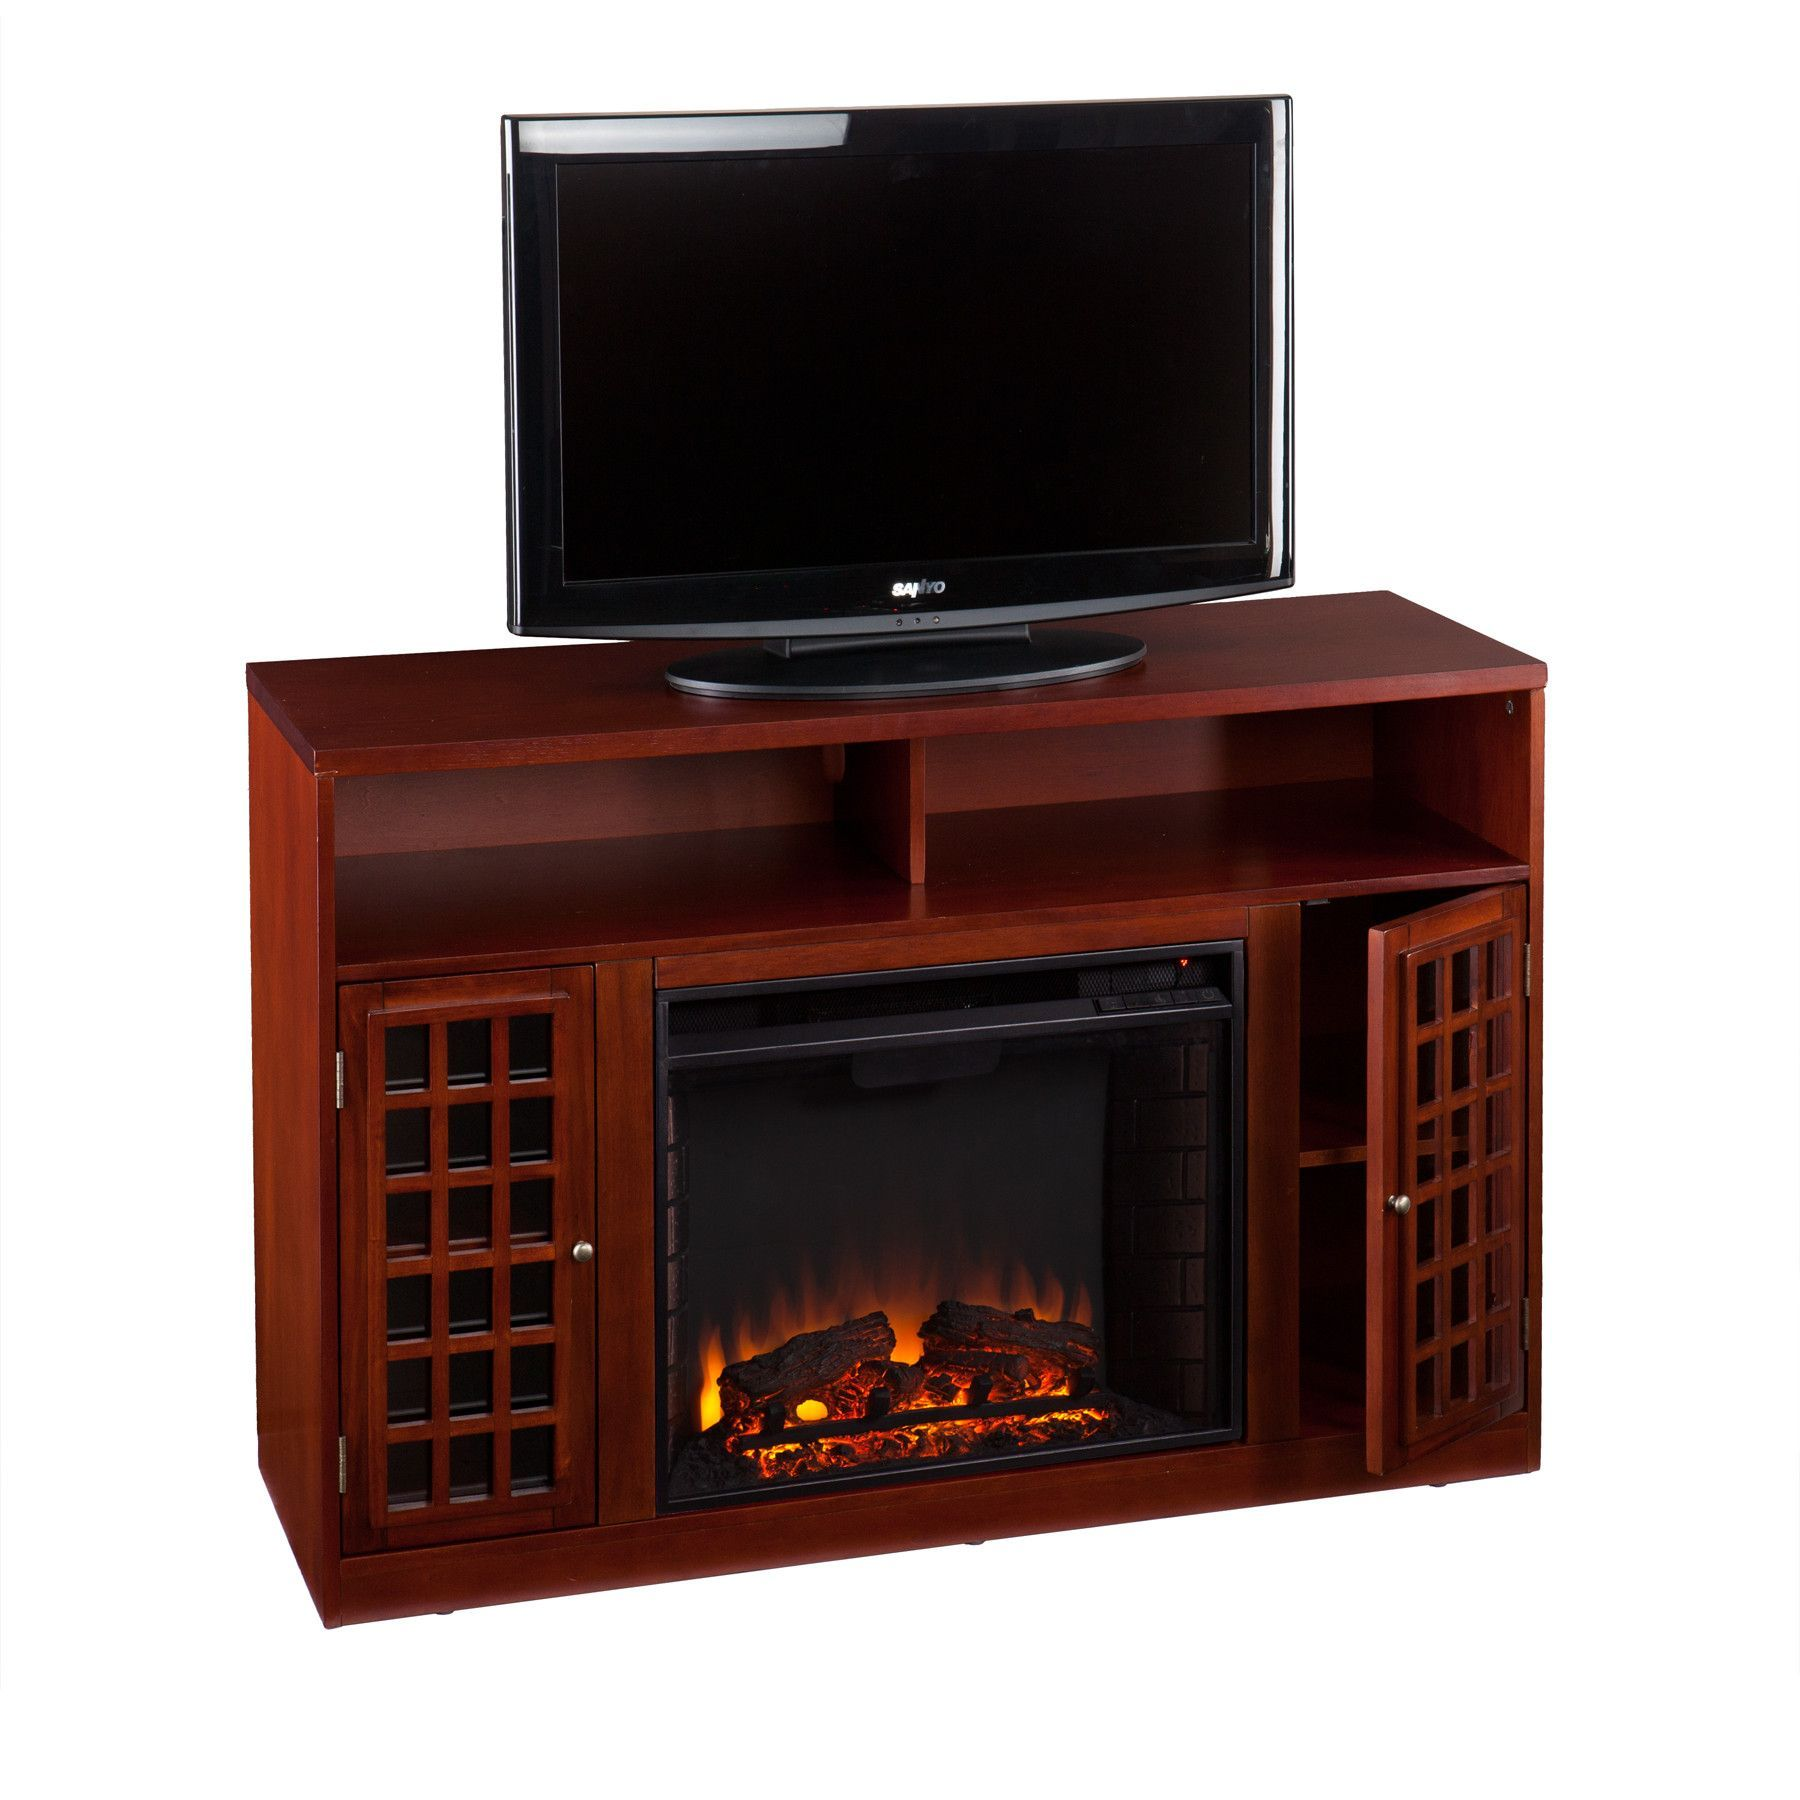 Narita Electric fireplace, Electric fireplace reviews